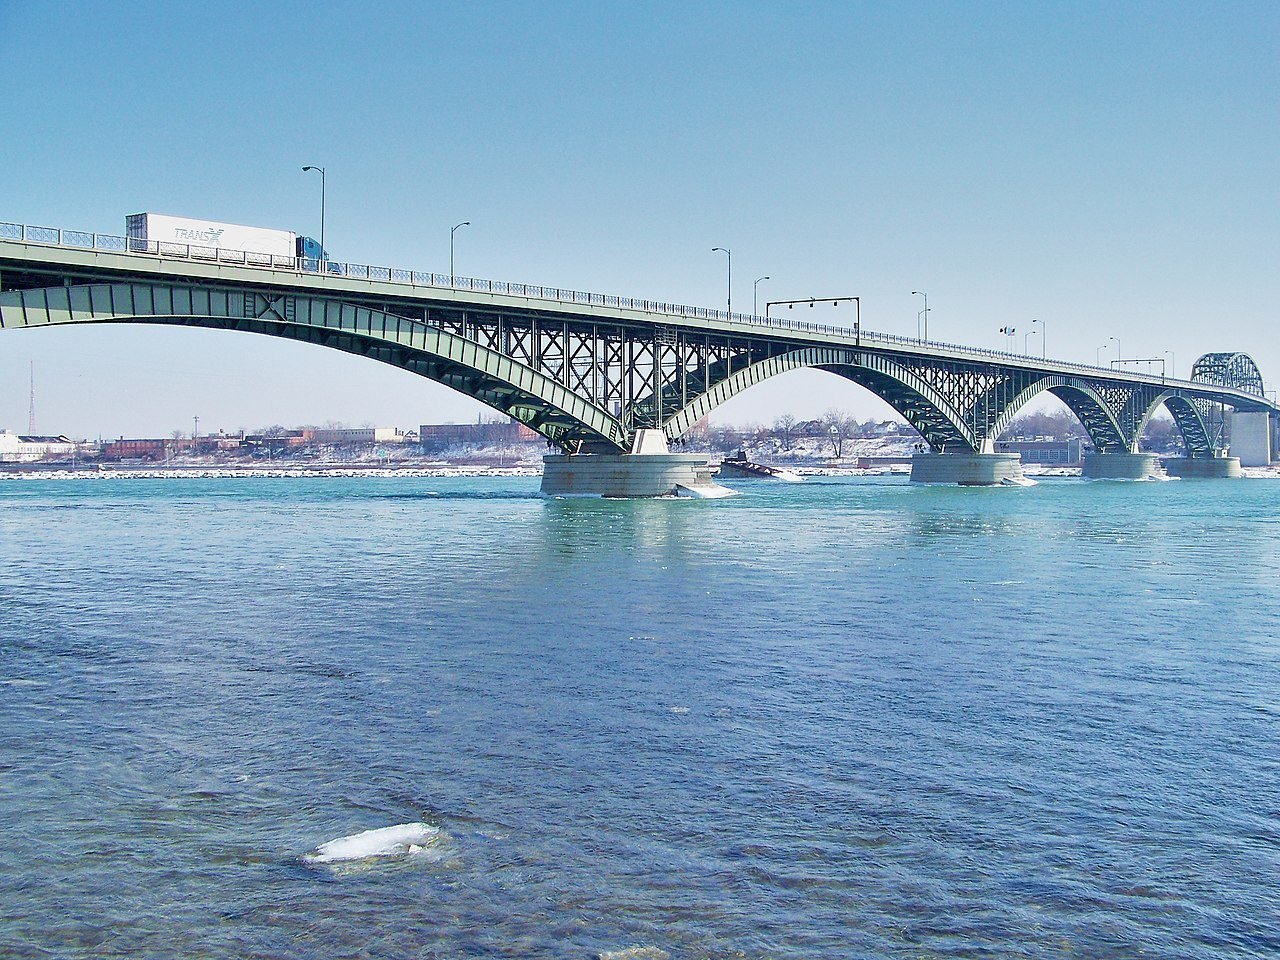 22-year-old Canadian pleads guilty to smuggling weed to US - Peace Bridge